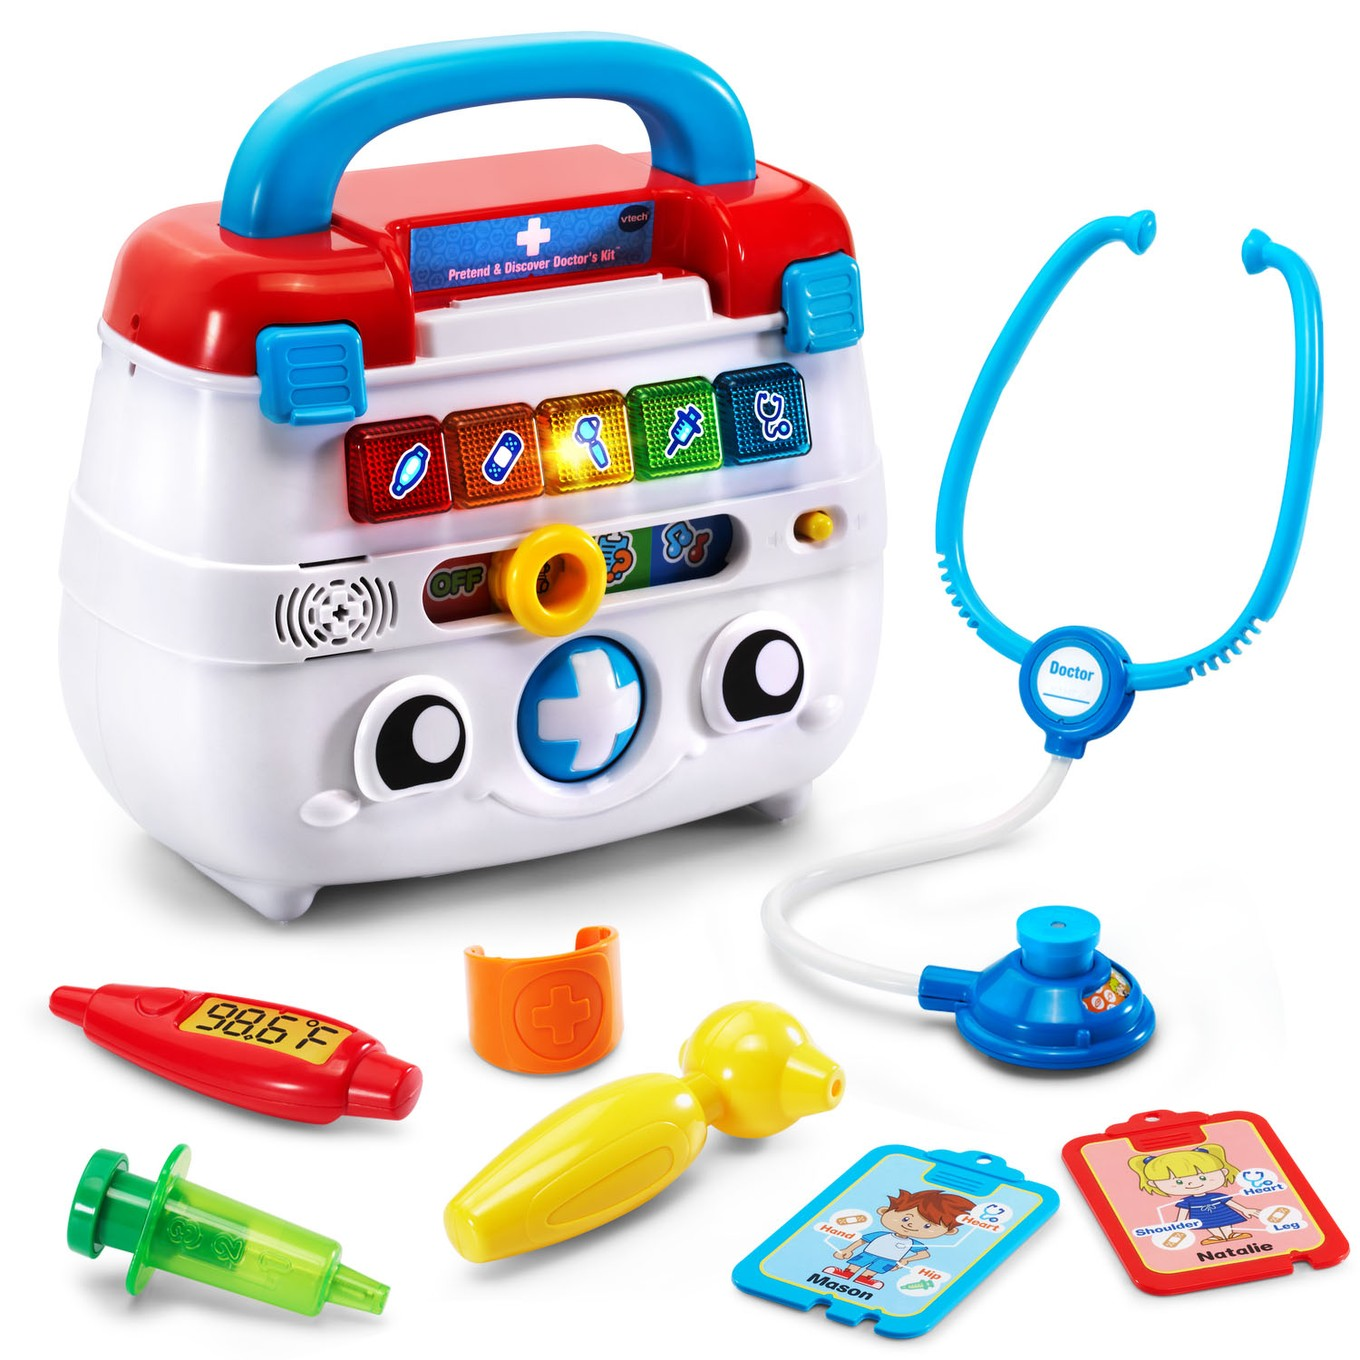 Walmart Educational Toys : Pretend discover doctor s kit™ │ vtech